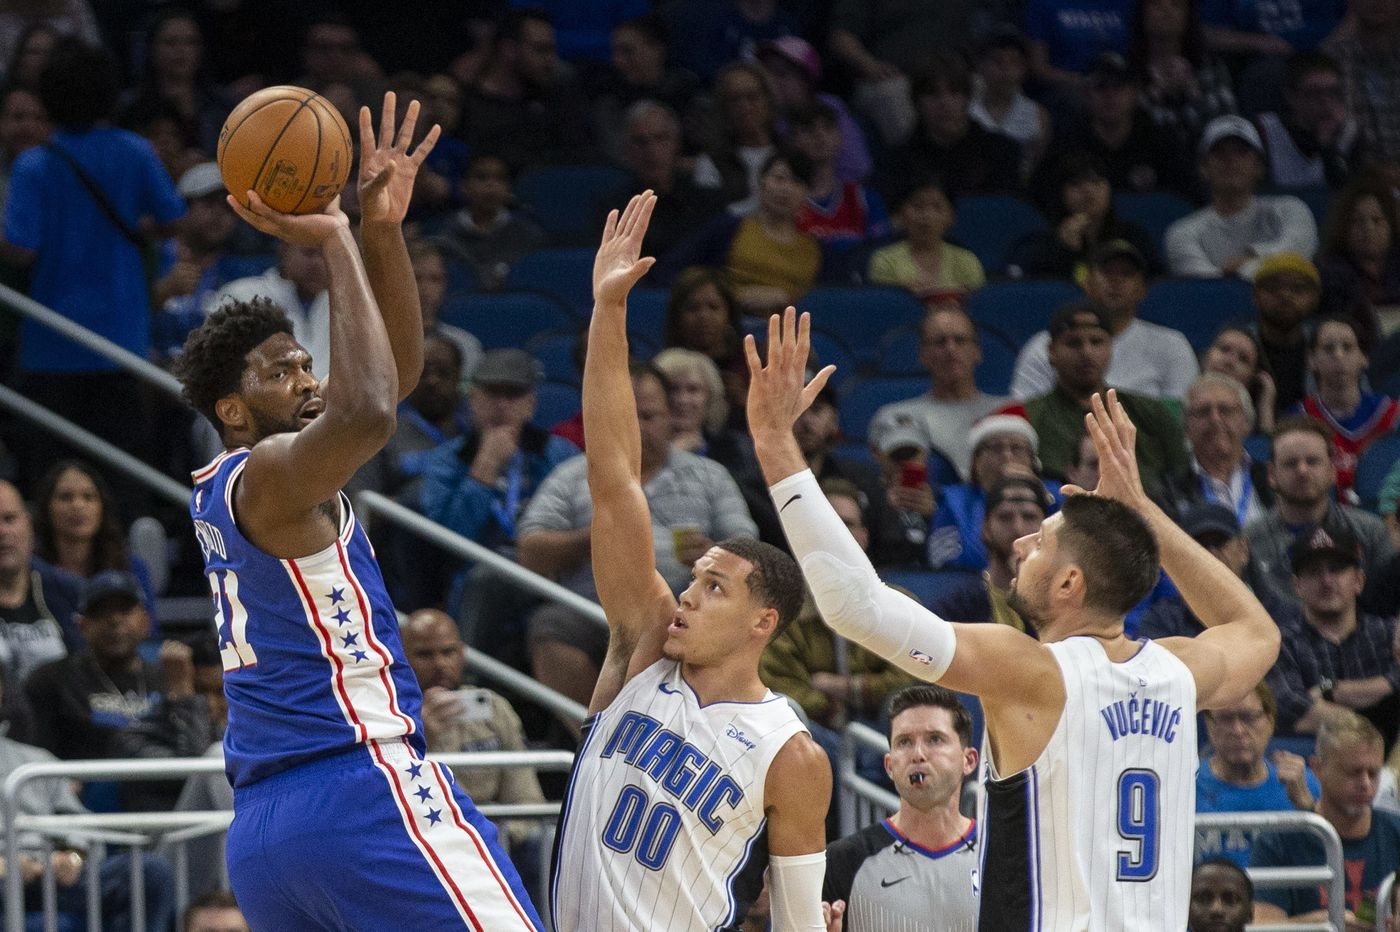 Sixers come out flat, lose to Magic after comeback bid falls short